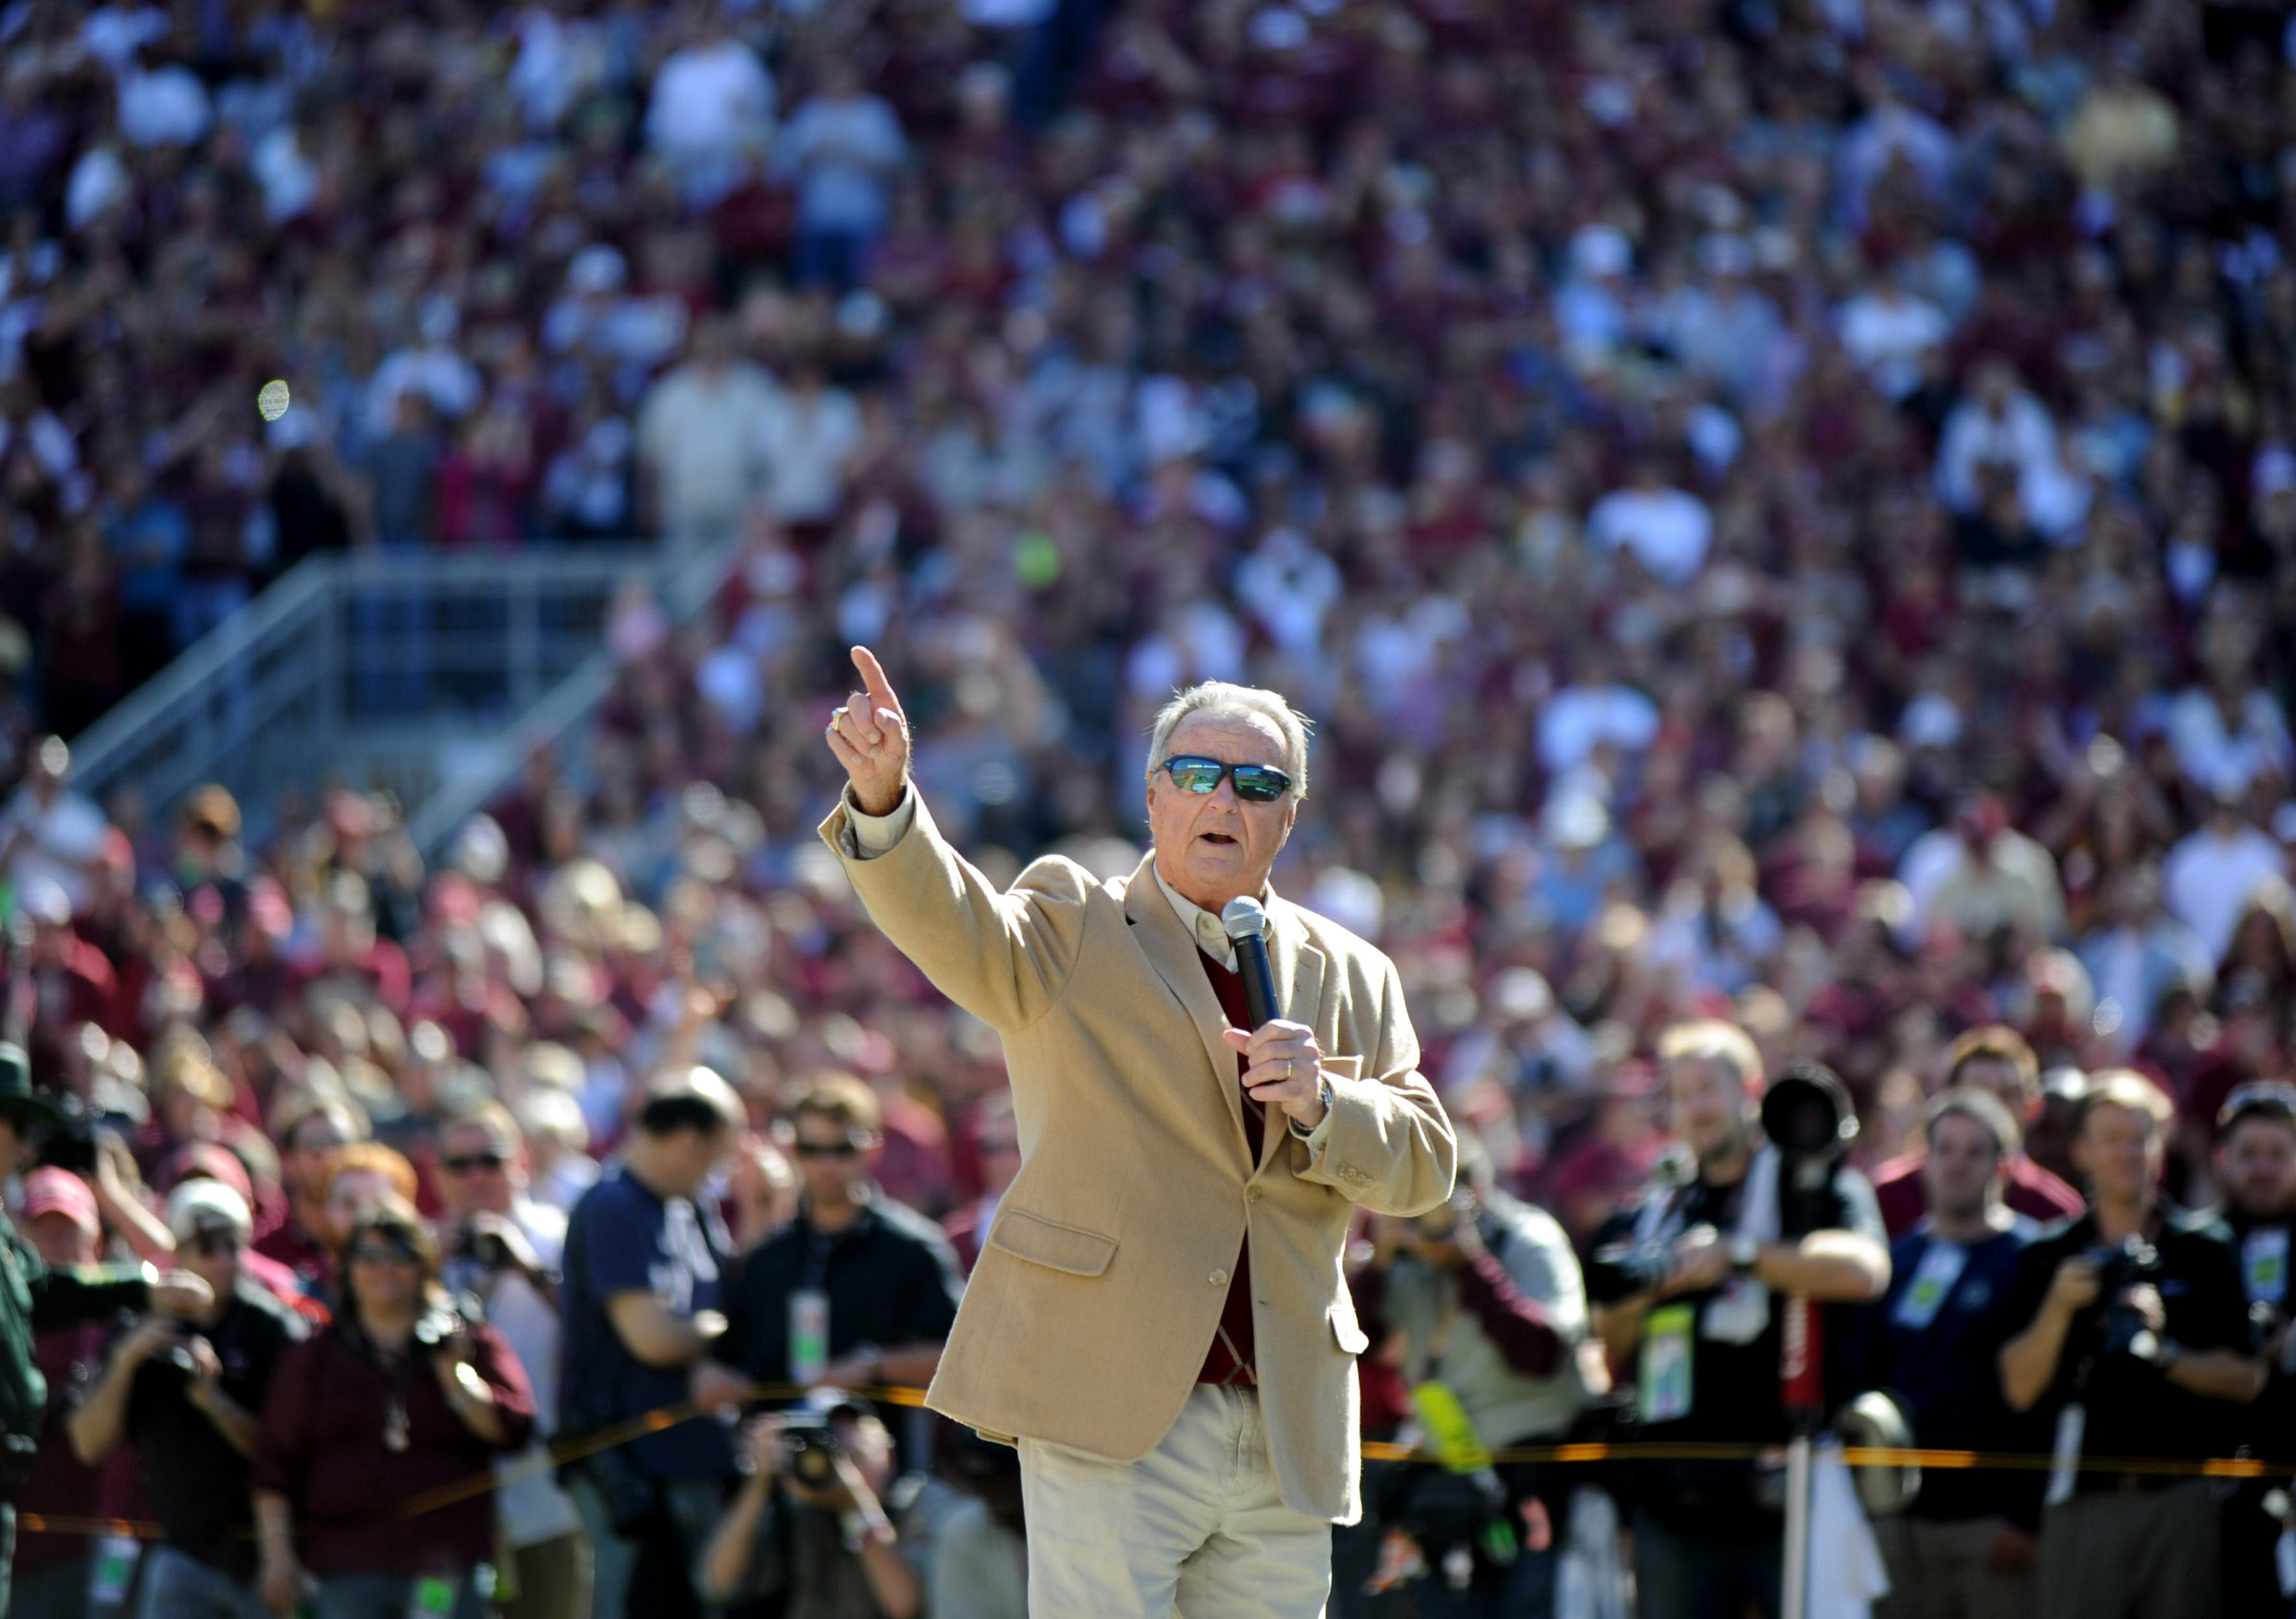 Bobby Bowden readmitted to hospital as precautionary measure after COVID-19 diagnosis